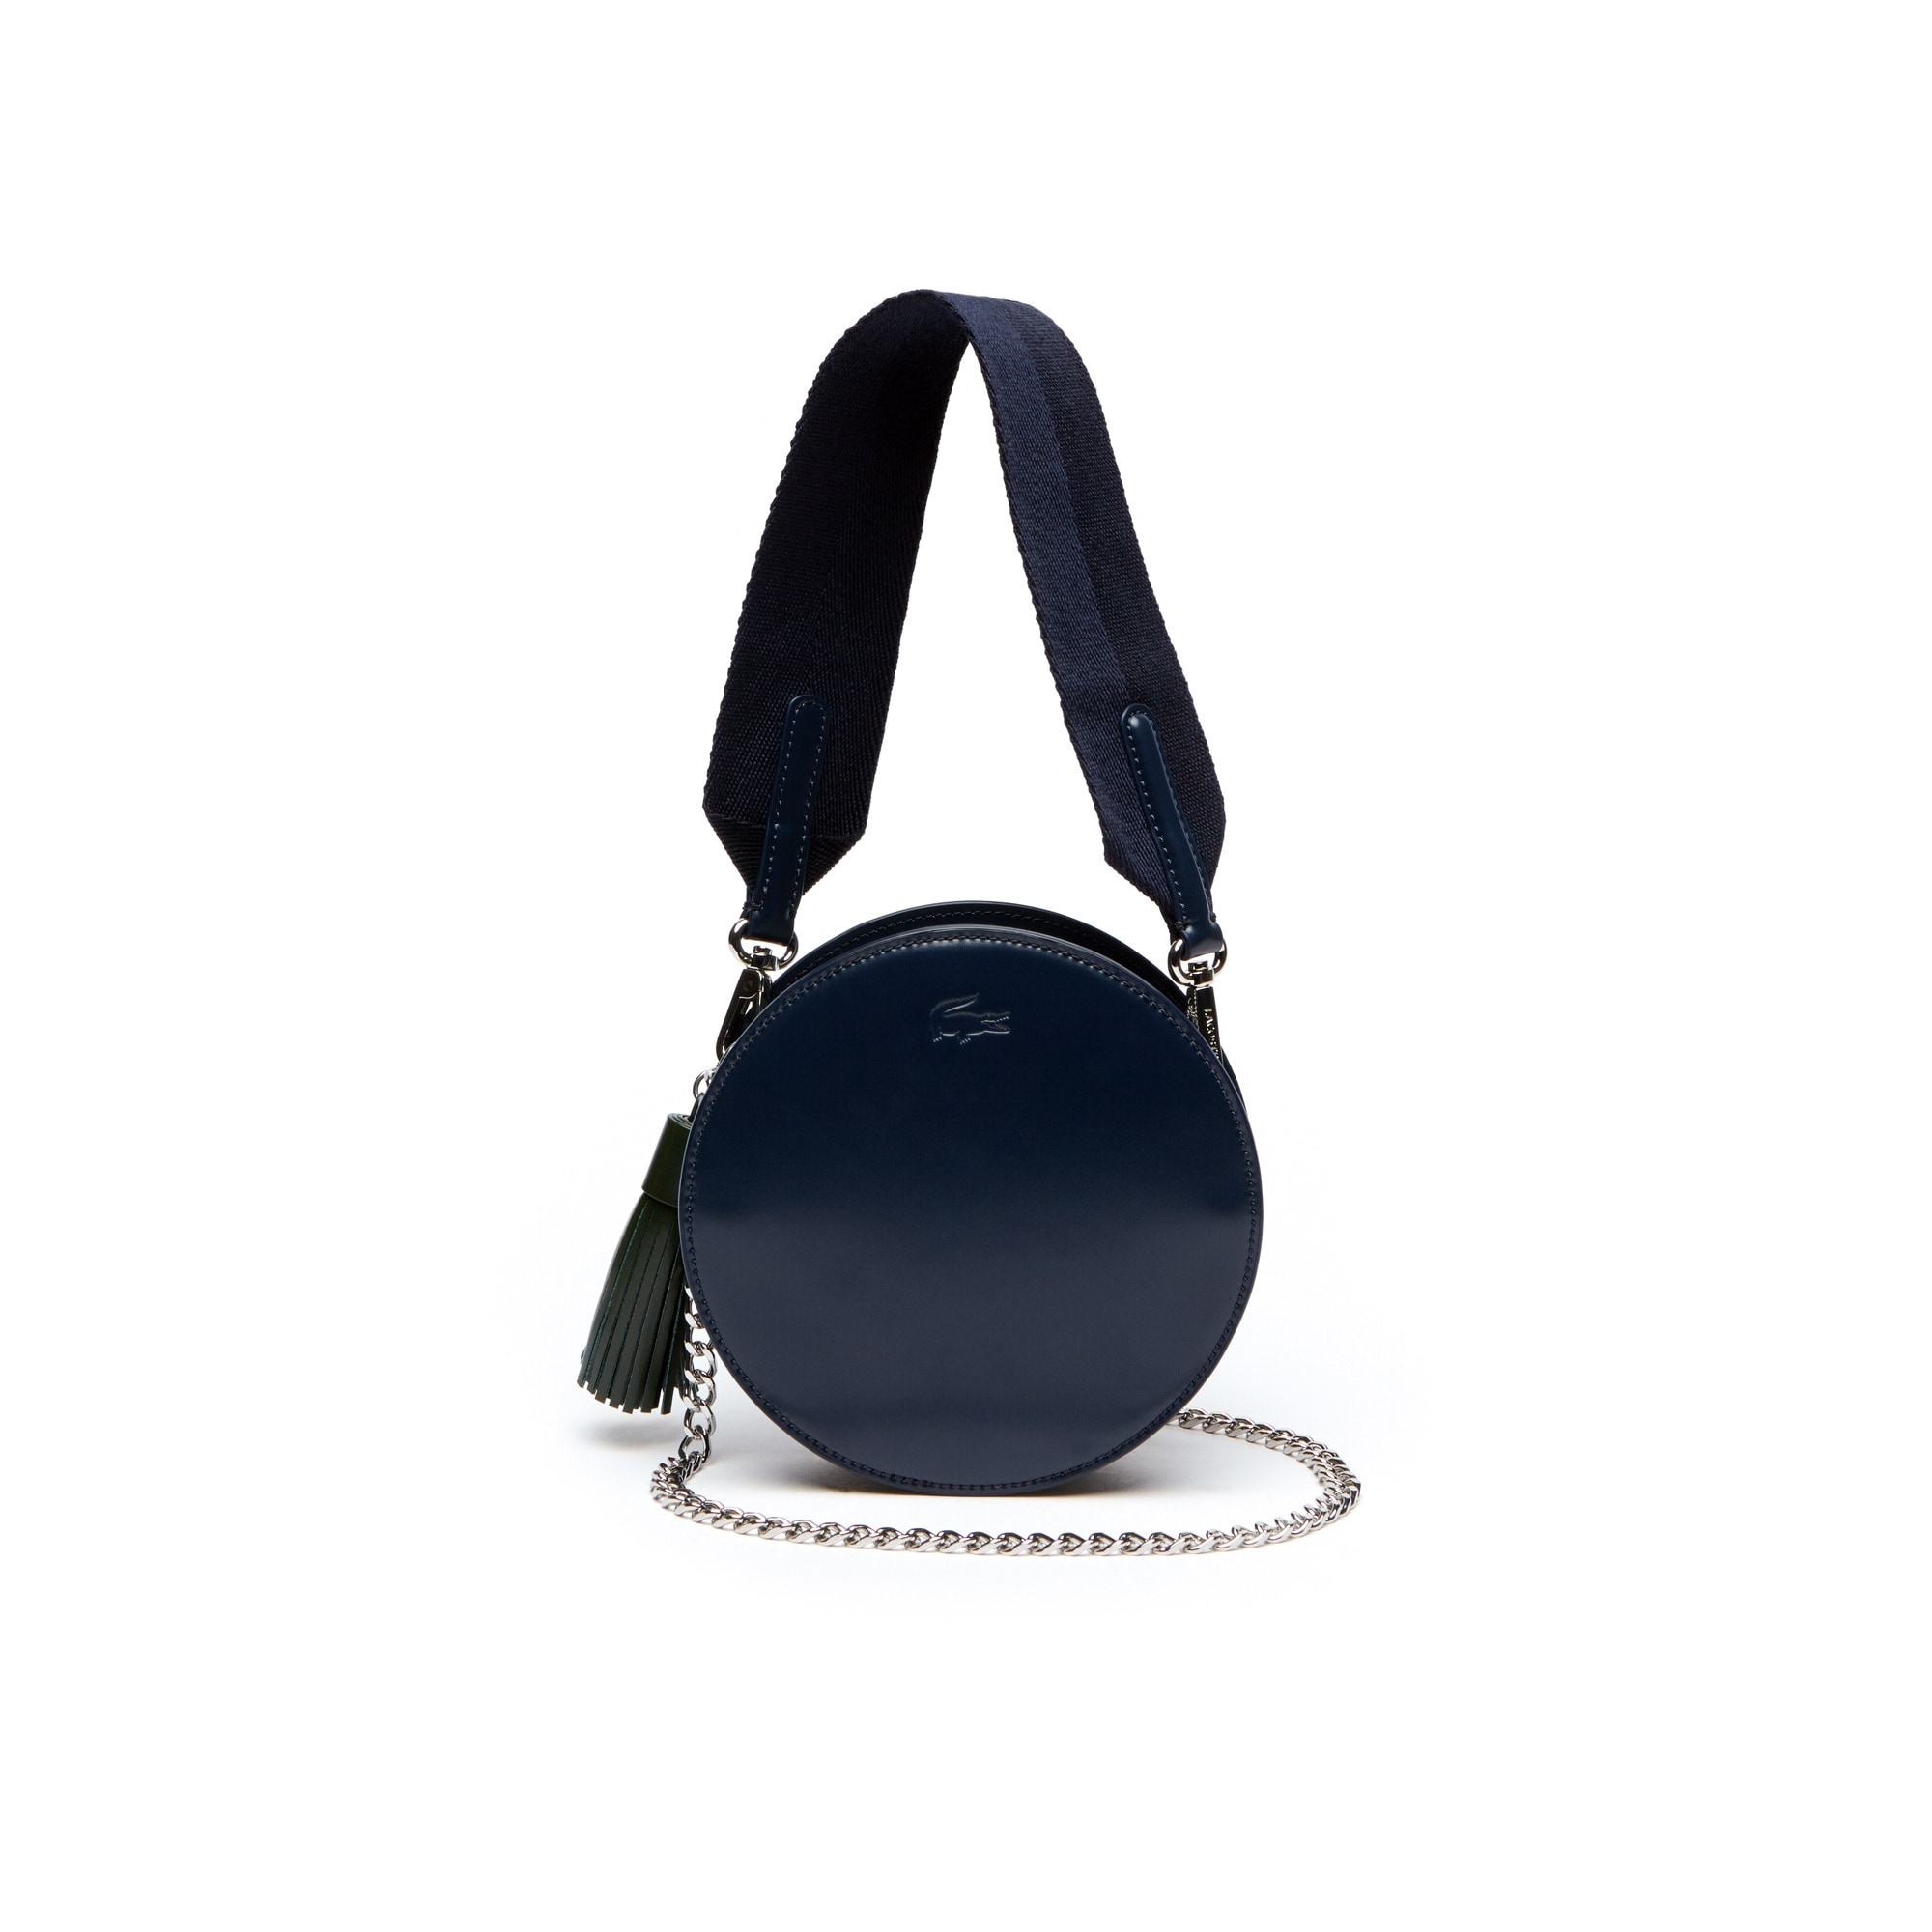 Women's Live Mate Coated Leather Round Crossover Bag